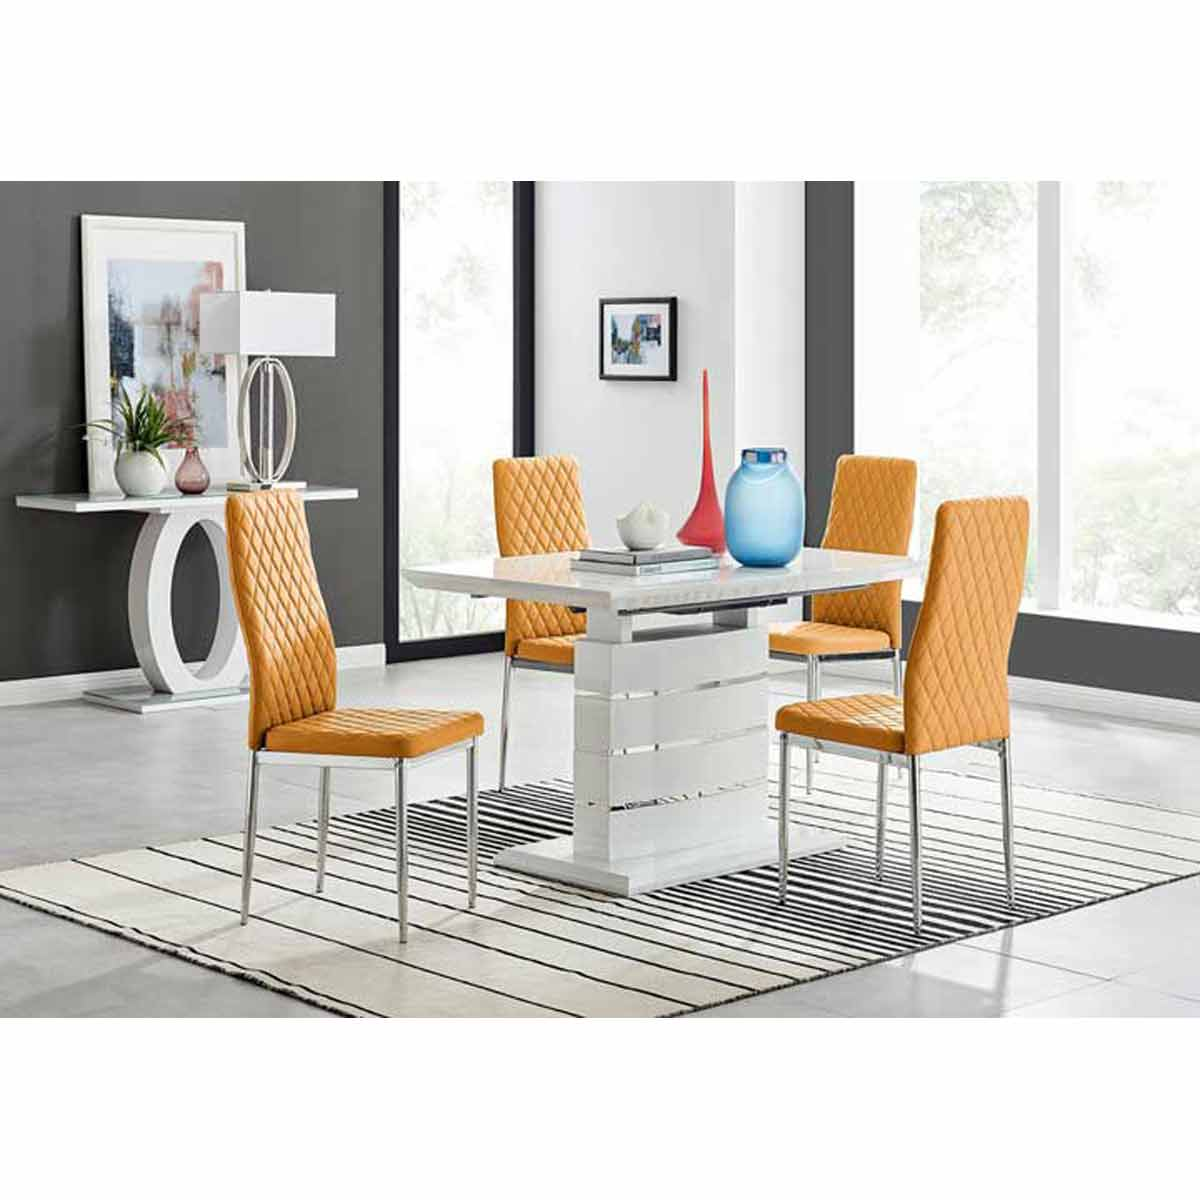 Furniture Box Renato 120cm High Gloss Extending Dining Table and 4 Mustard Milan Chairs